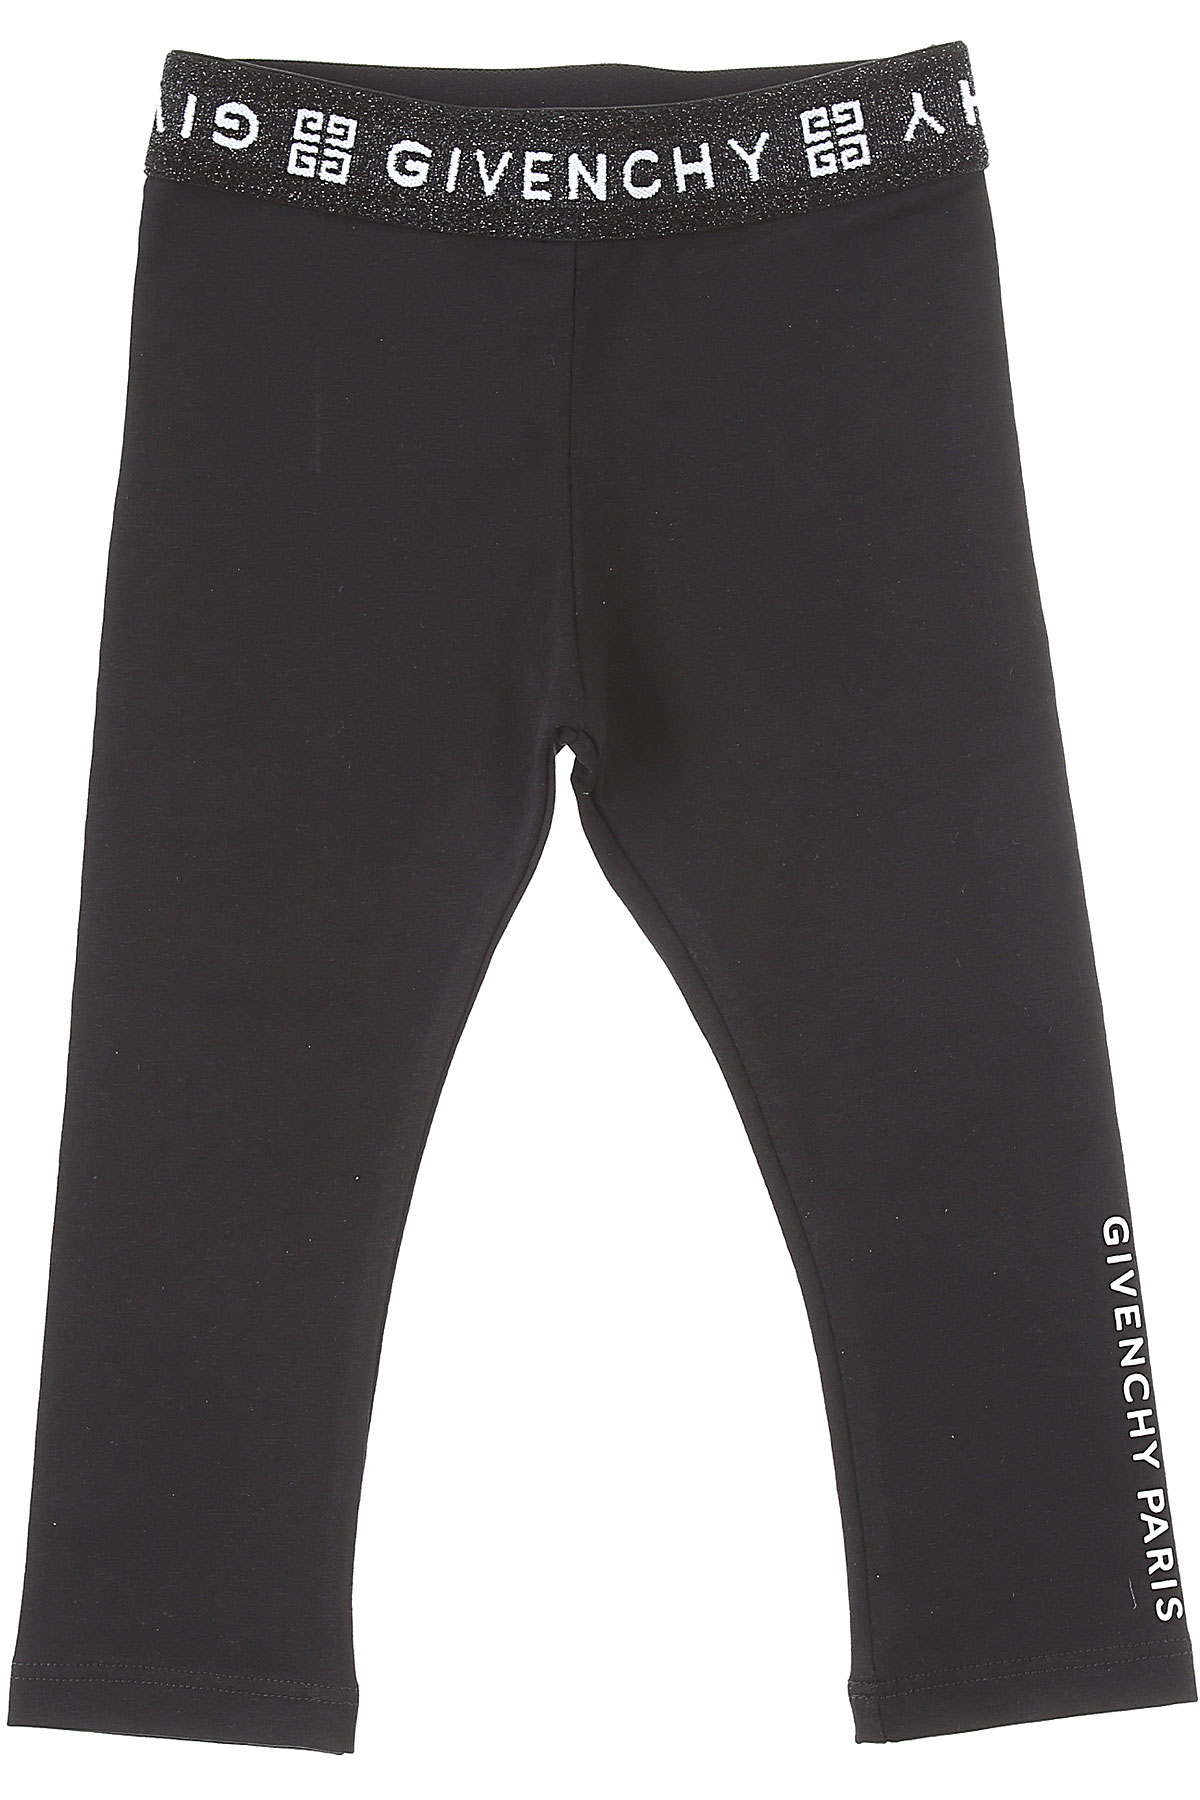 Givenchy Baby Pants for Girls On Sale, Black, Cotton, 2019, 12M 18M 2Y 3Y 9M